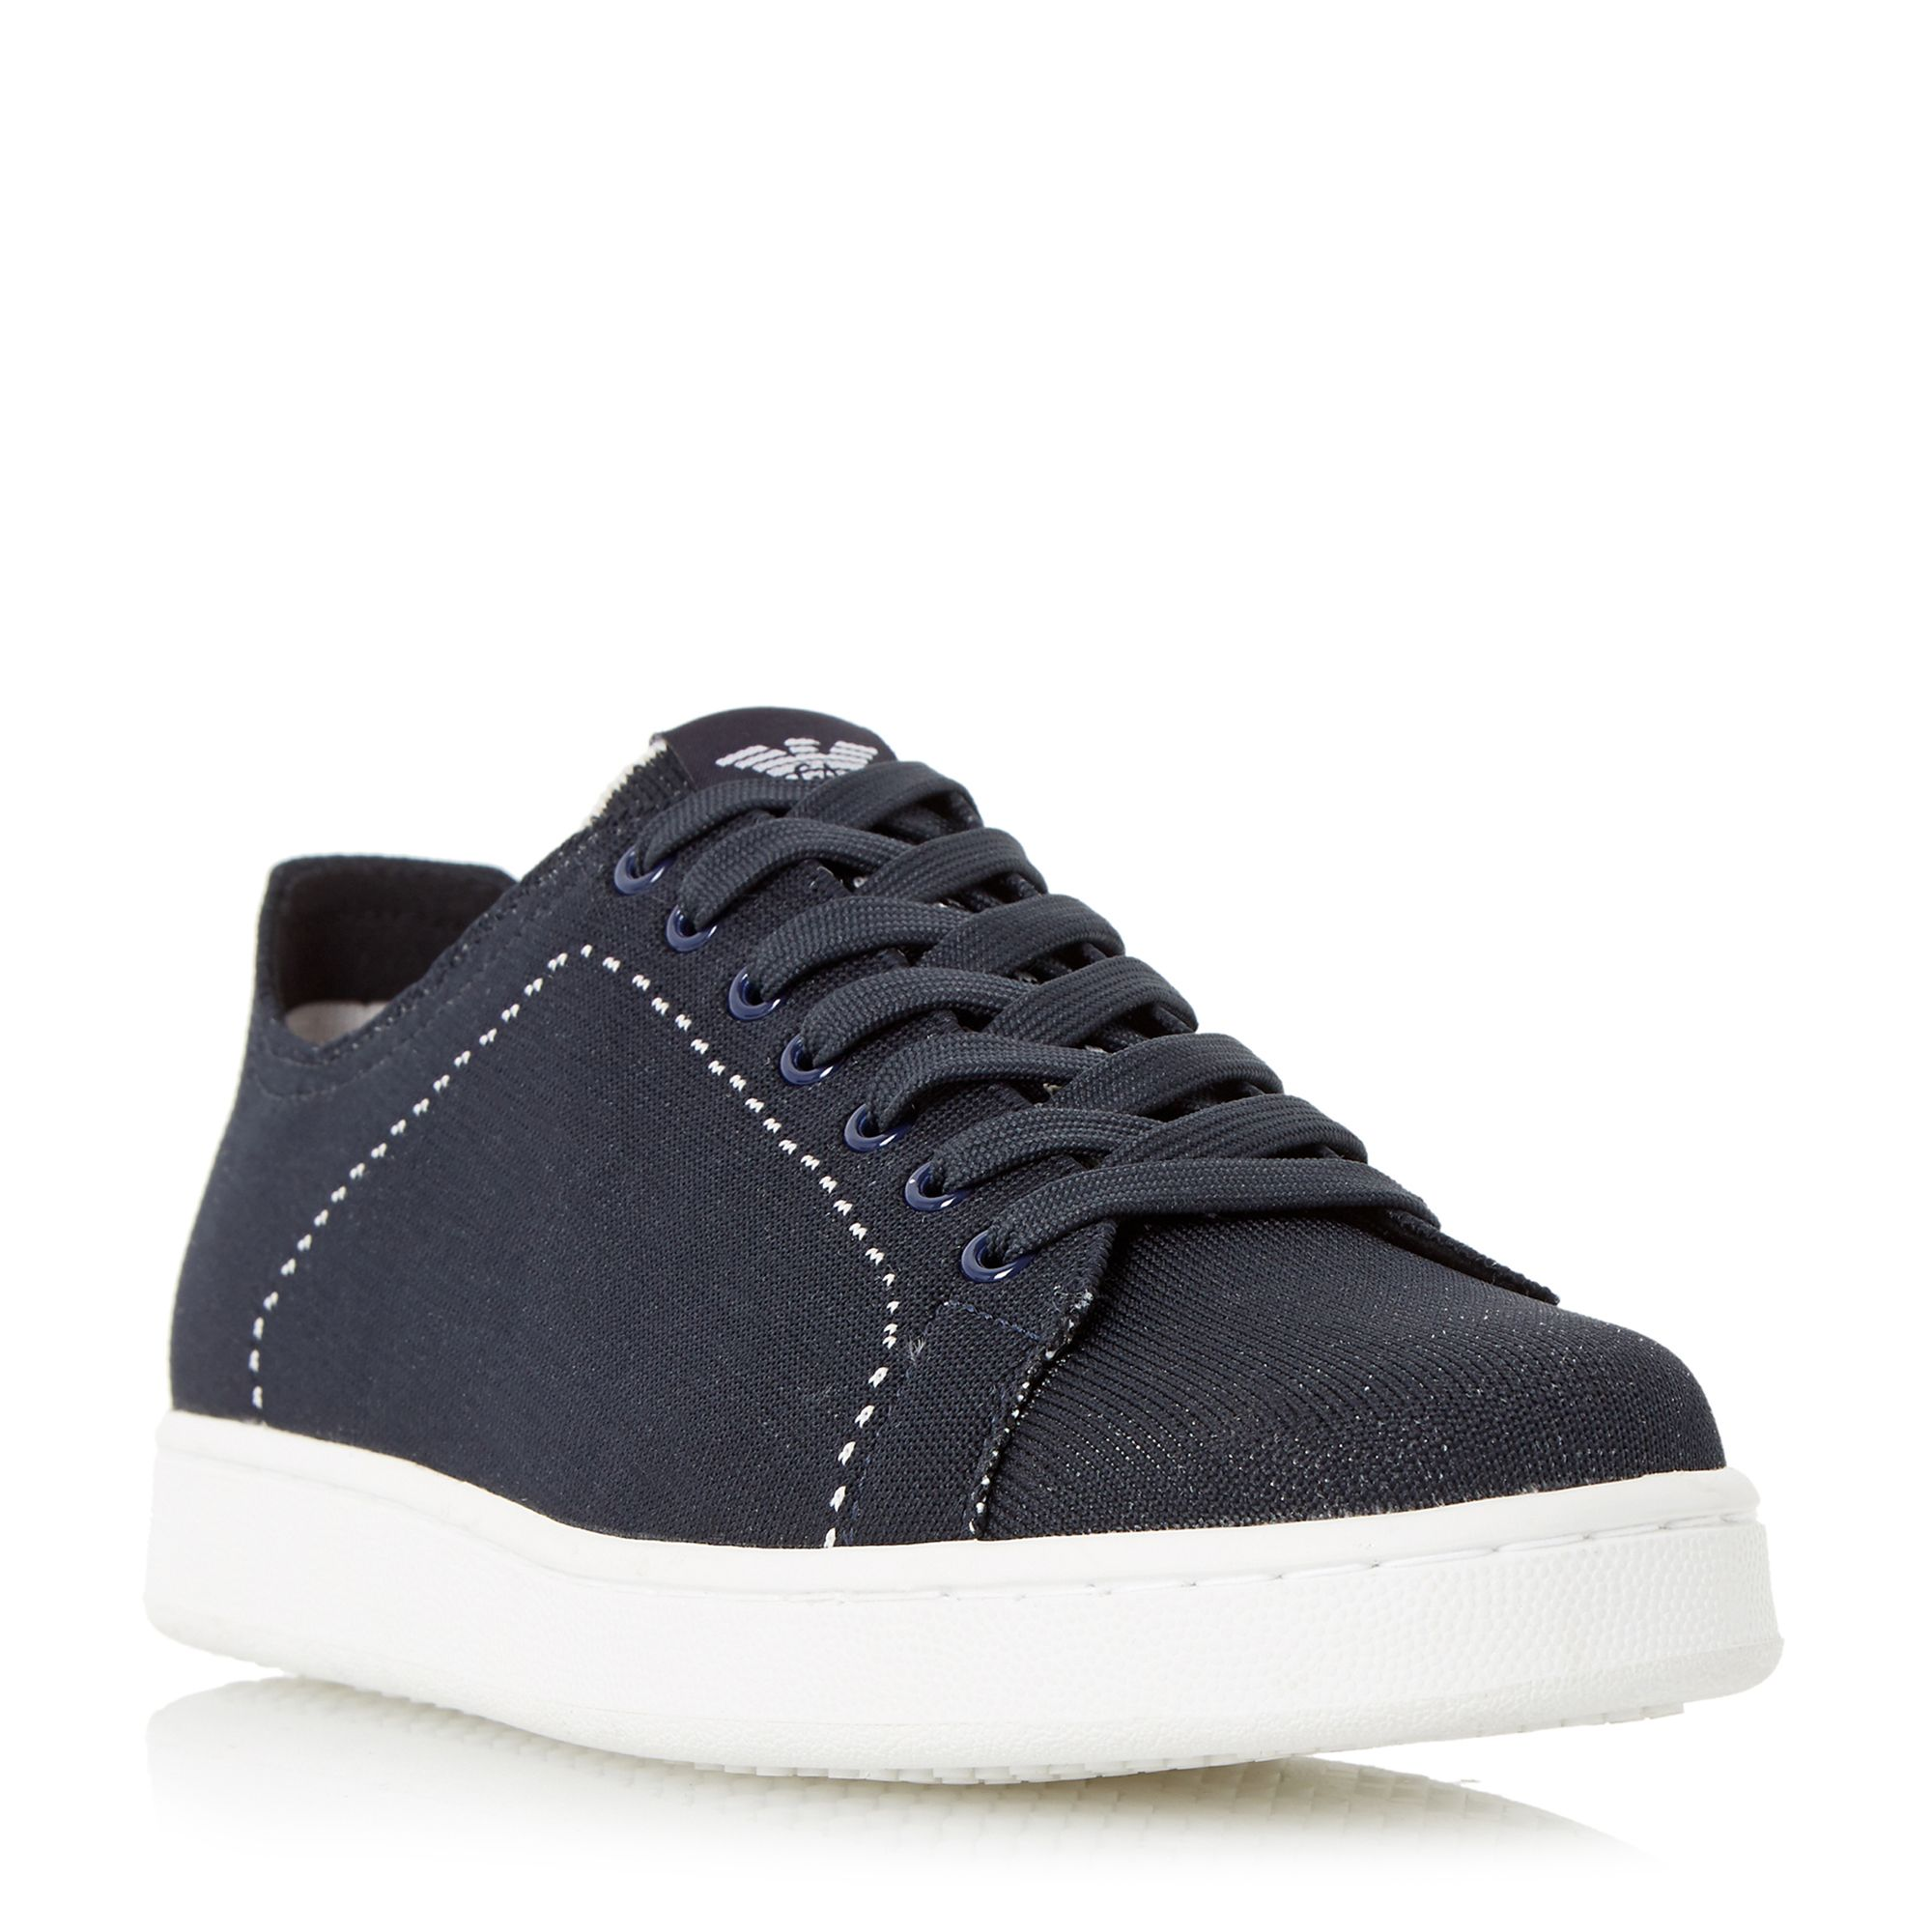 Armani Jeans C6513y6 Stitch Detail Trainers Navy